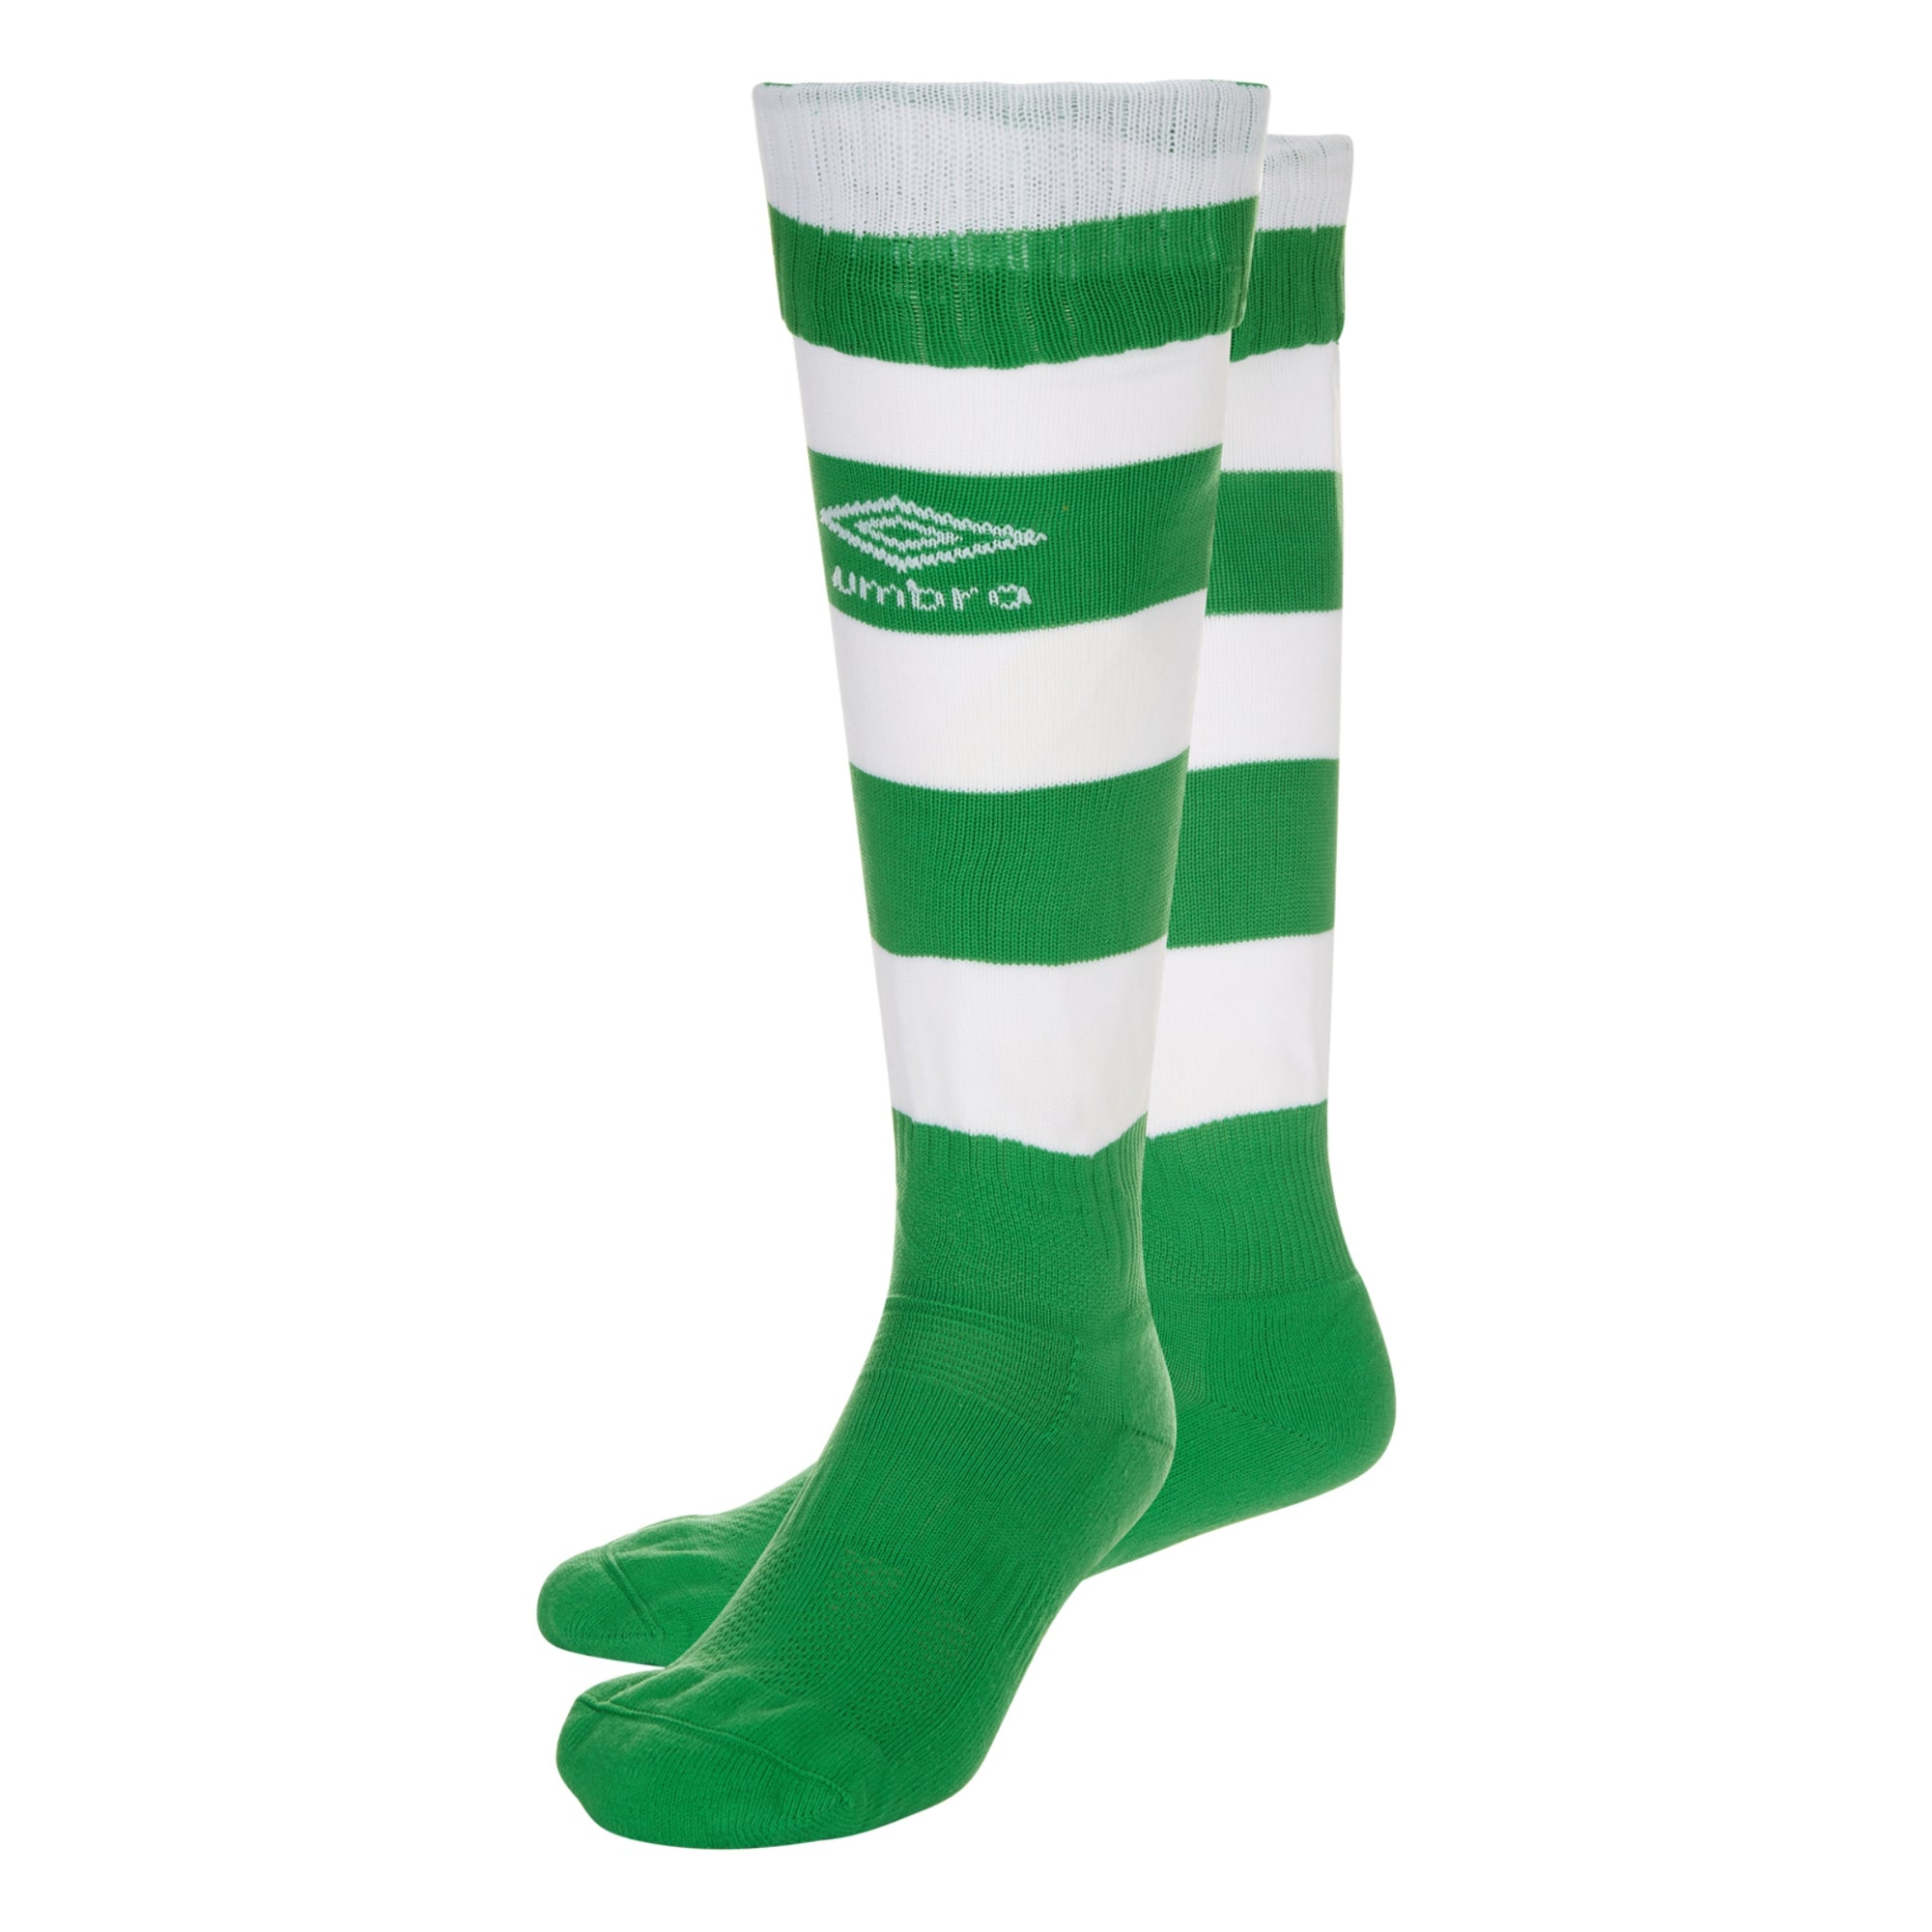 Umbro Hoop Sock - Emerald/White